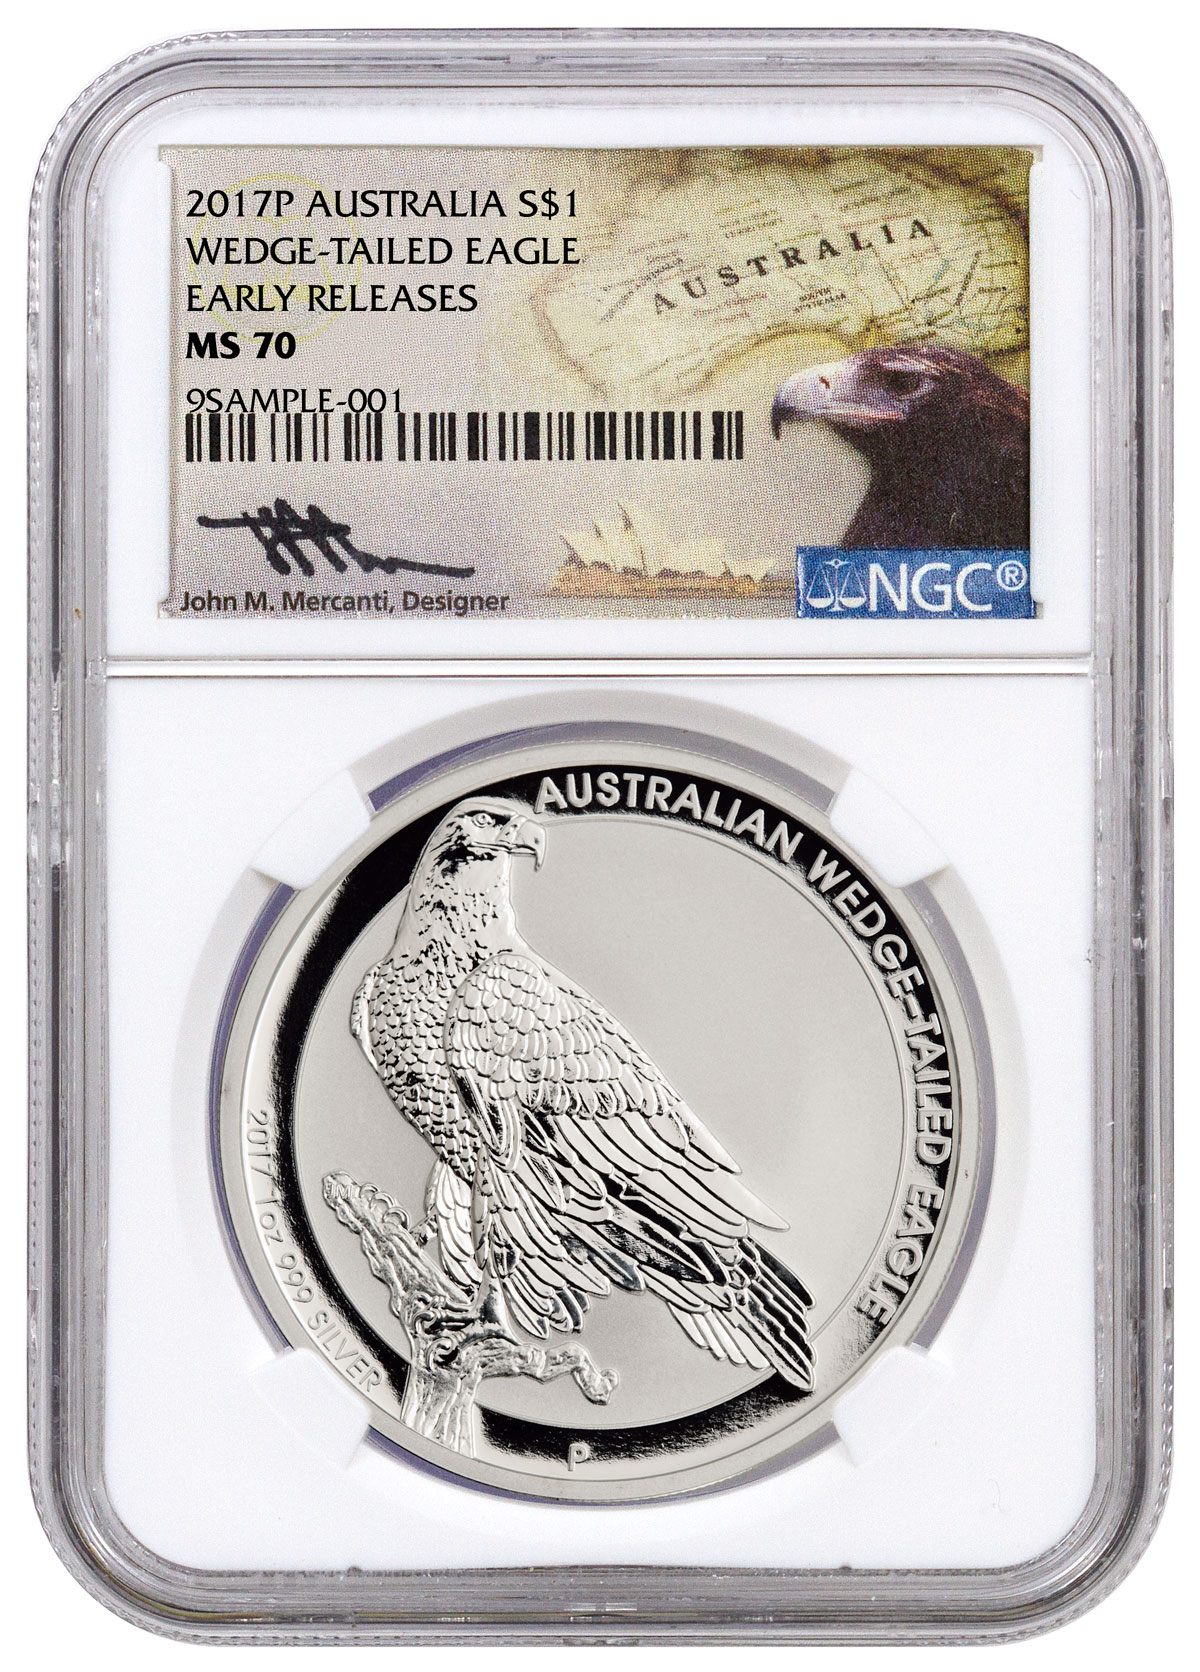 2017 Australia 1 oz Silver Wedge-Tailed Eagle $1 NGC MS70 ER (Mercanti Signed Label)